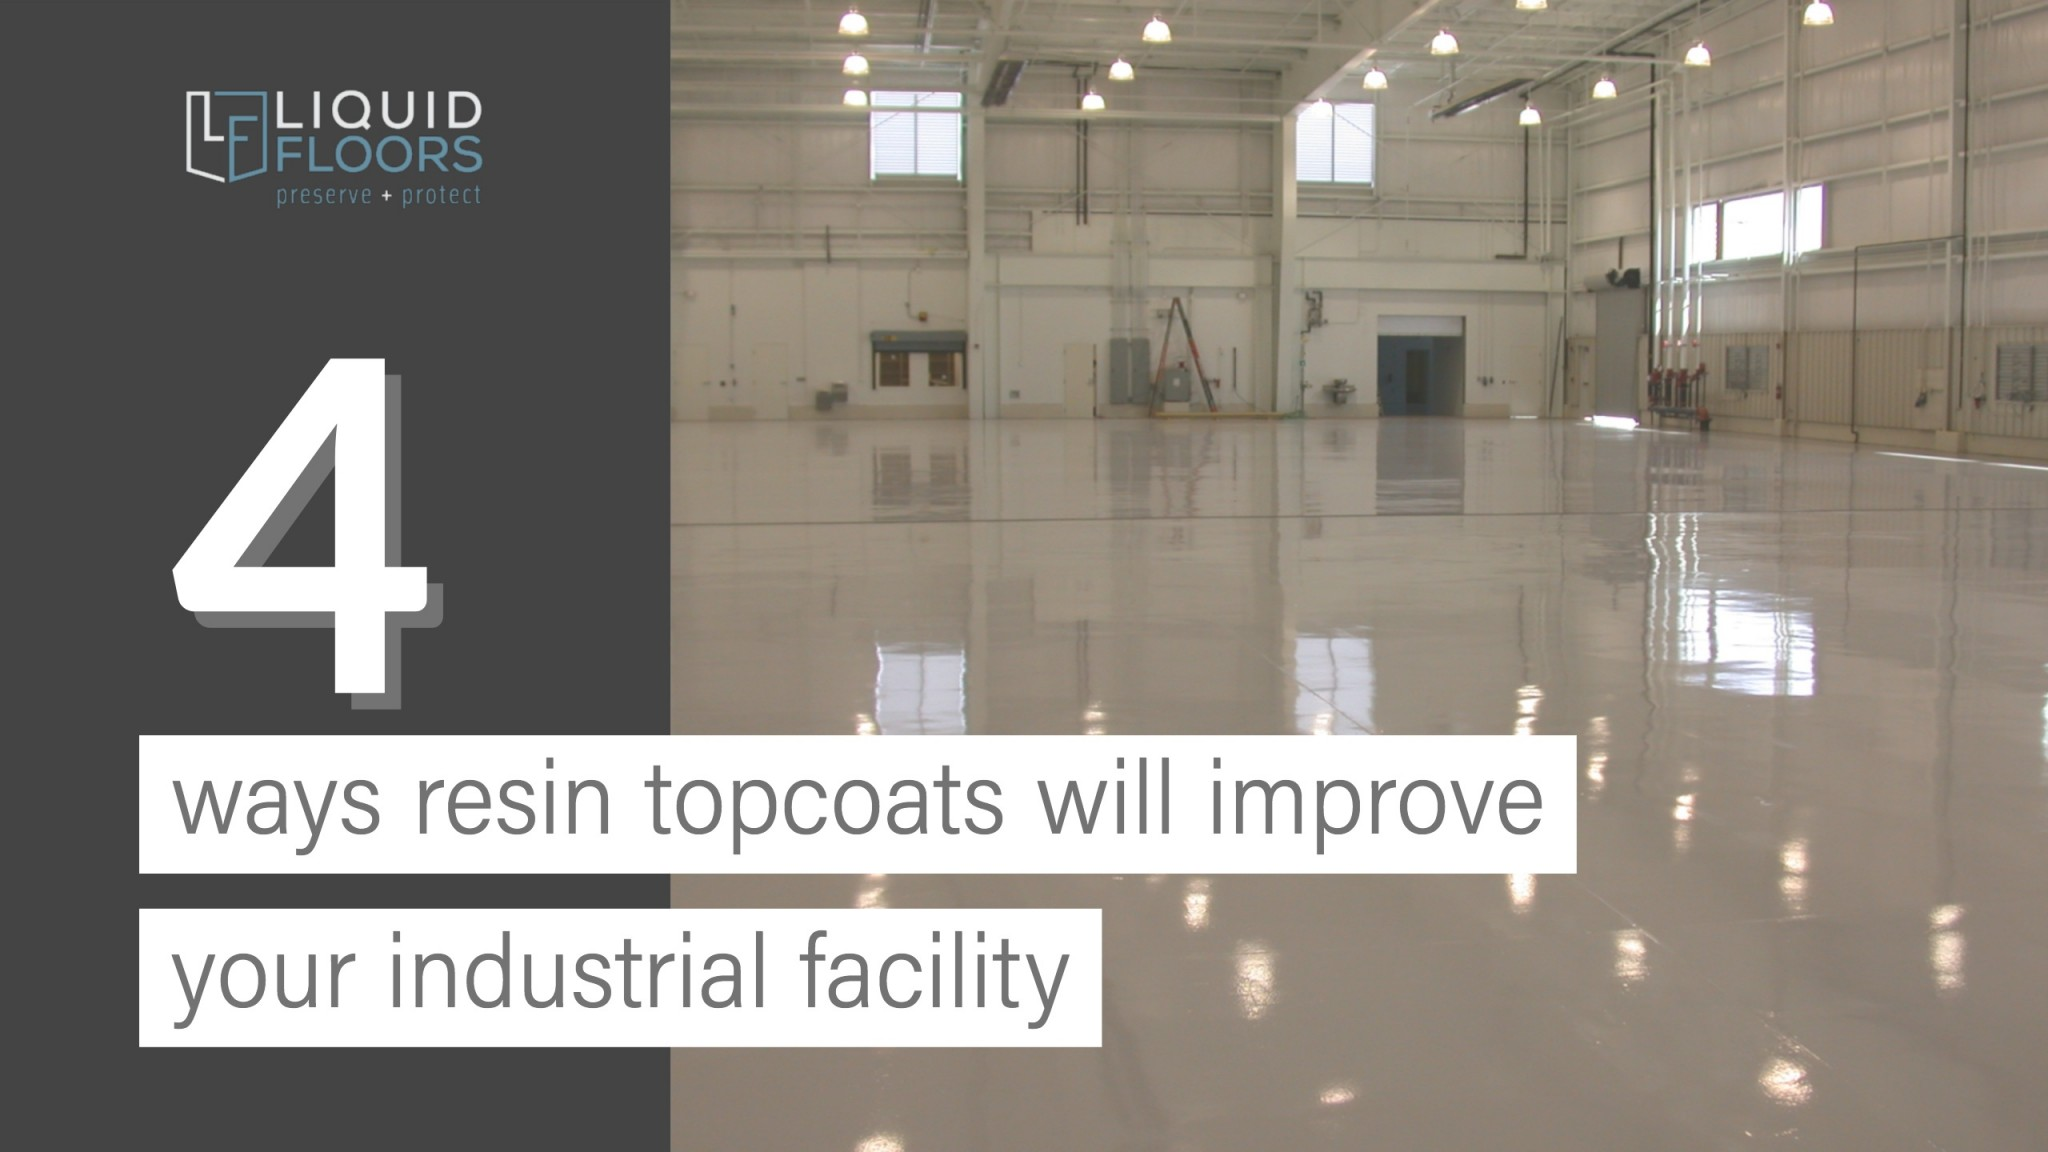 4 Ways Clear Resin Topcoats Will Improve Your Industrial Facility